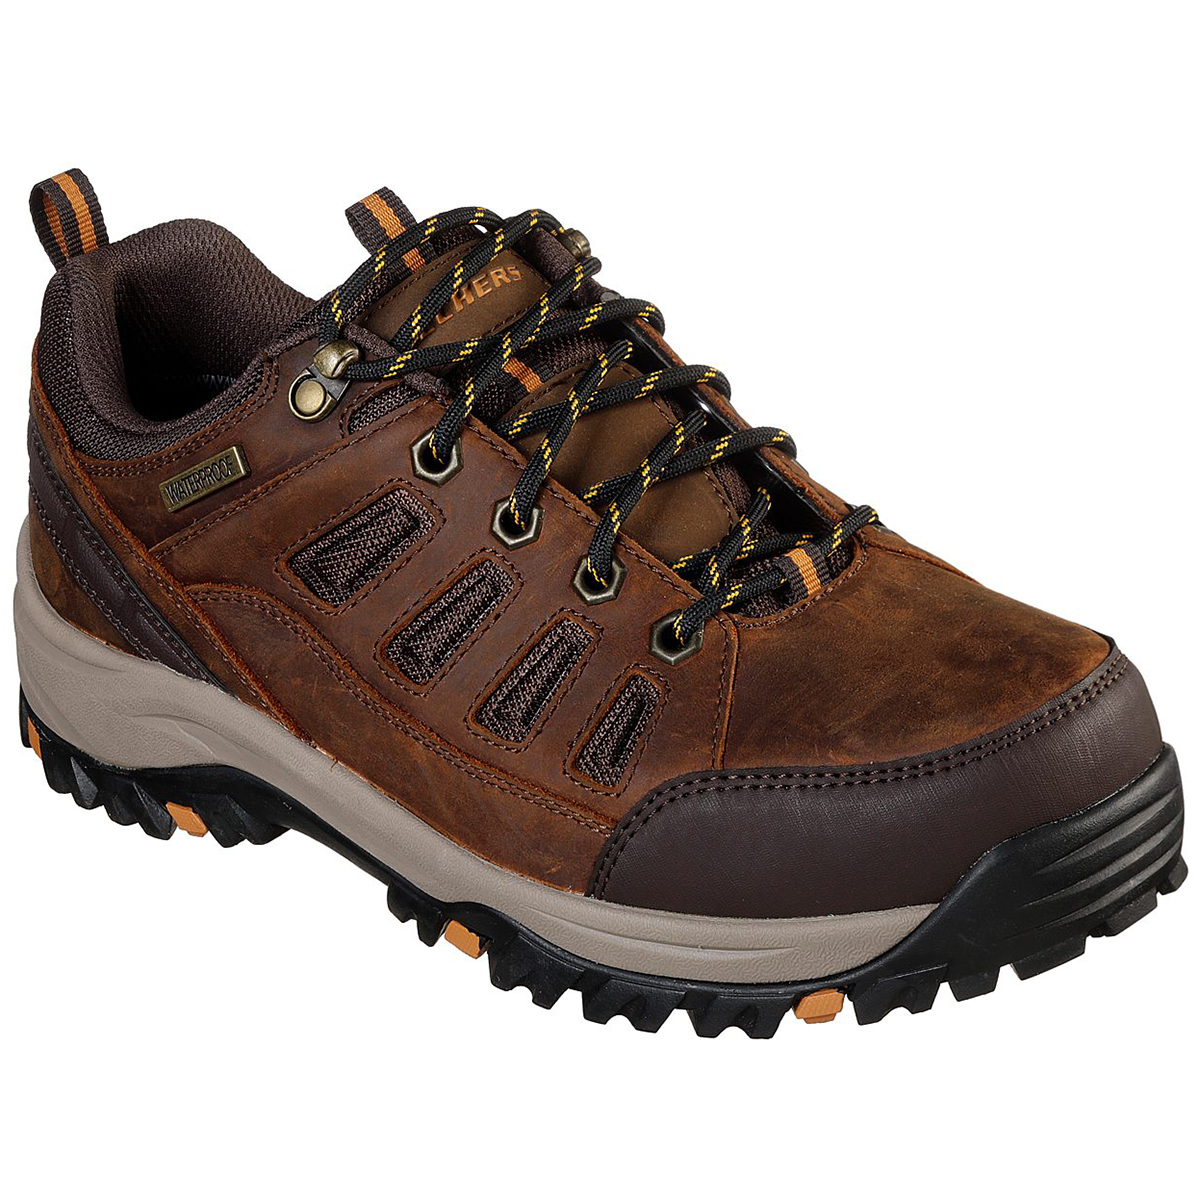 Skechers Men's Relaxed Fit Relment-Semego Hiking Shoe - Brown, 9.5